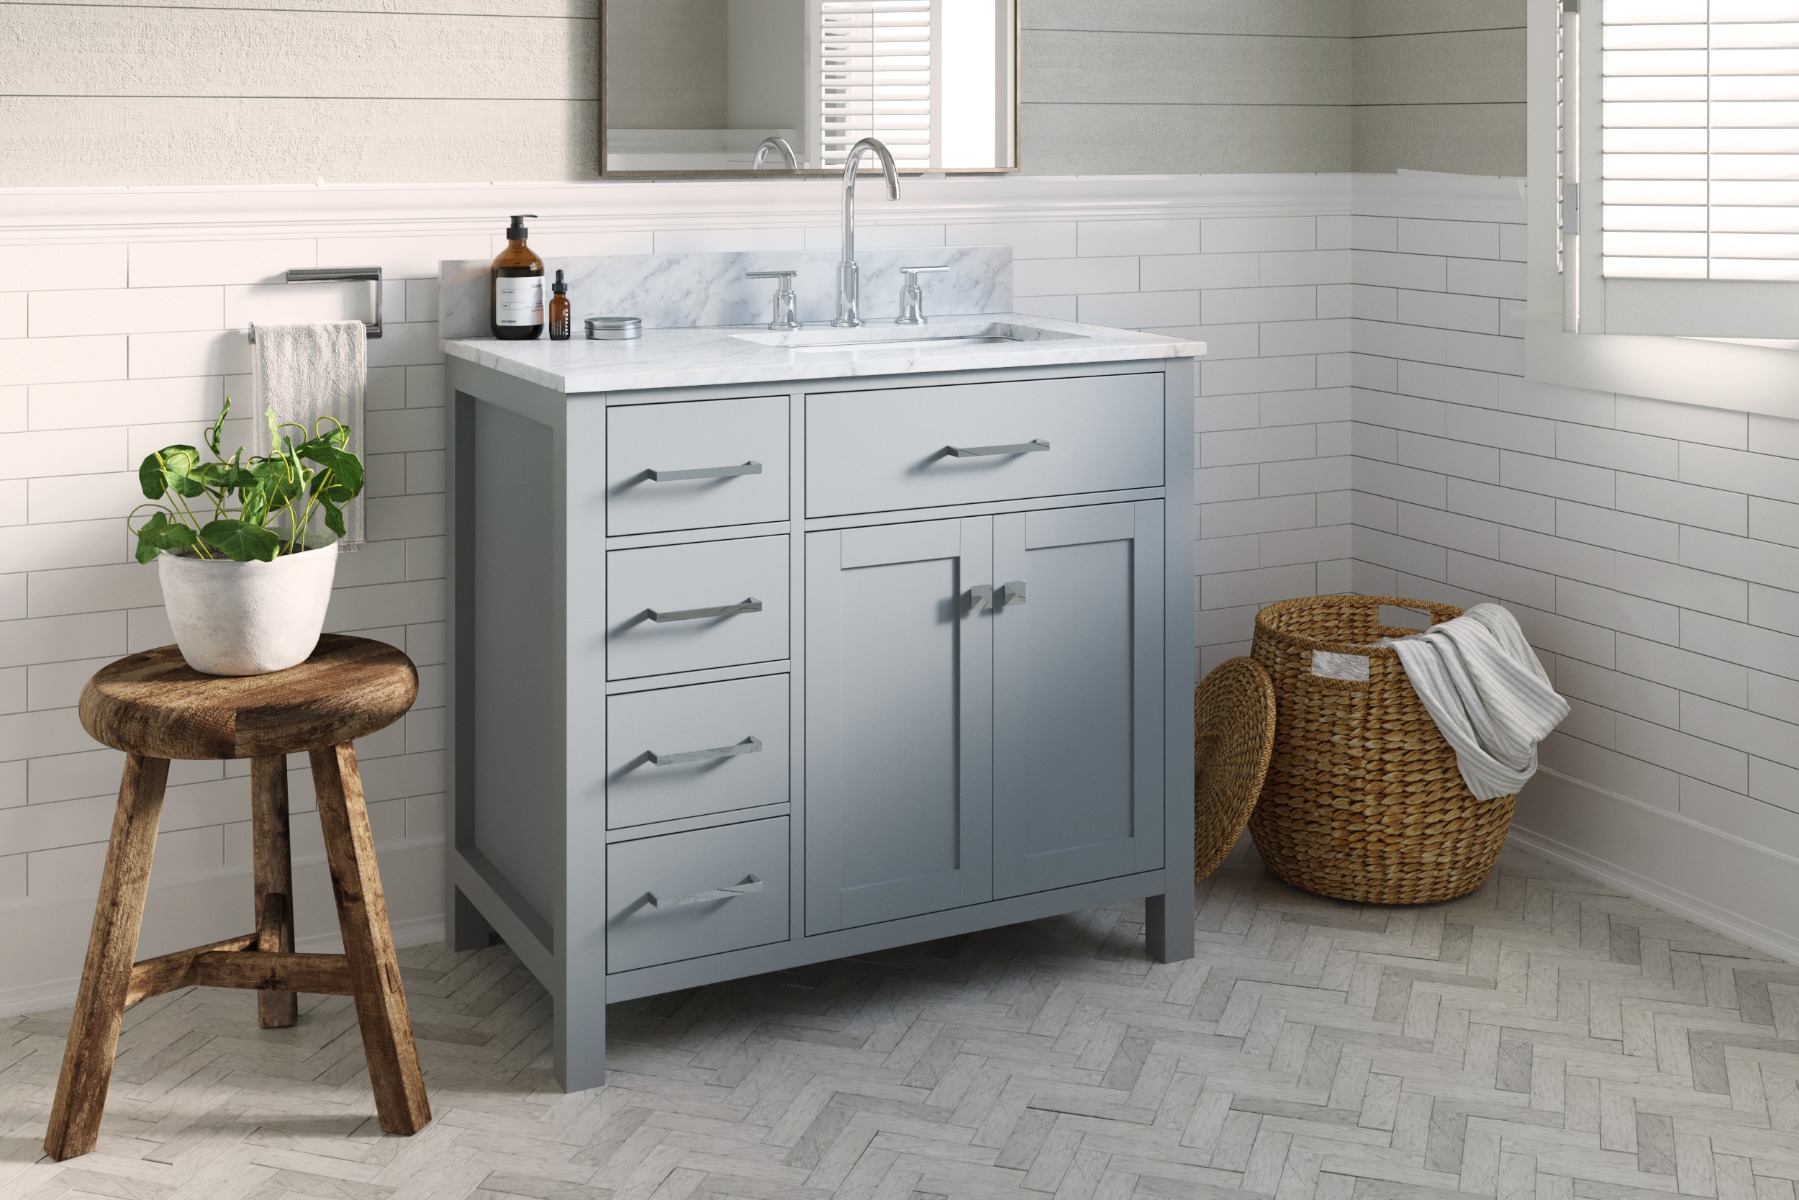 Belmont Decor Hampton 36 In. Left Offset Single Sink Base Cabinet In White With Matching Framed Mirror